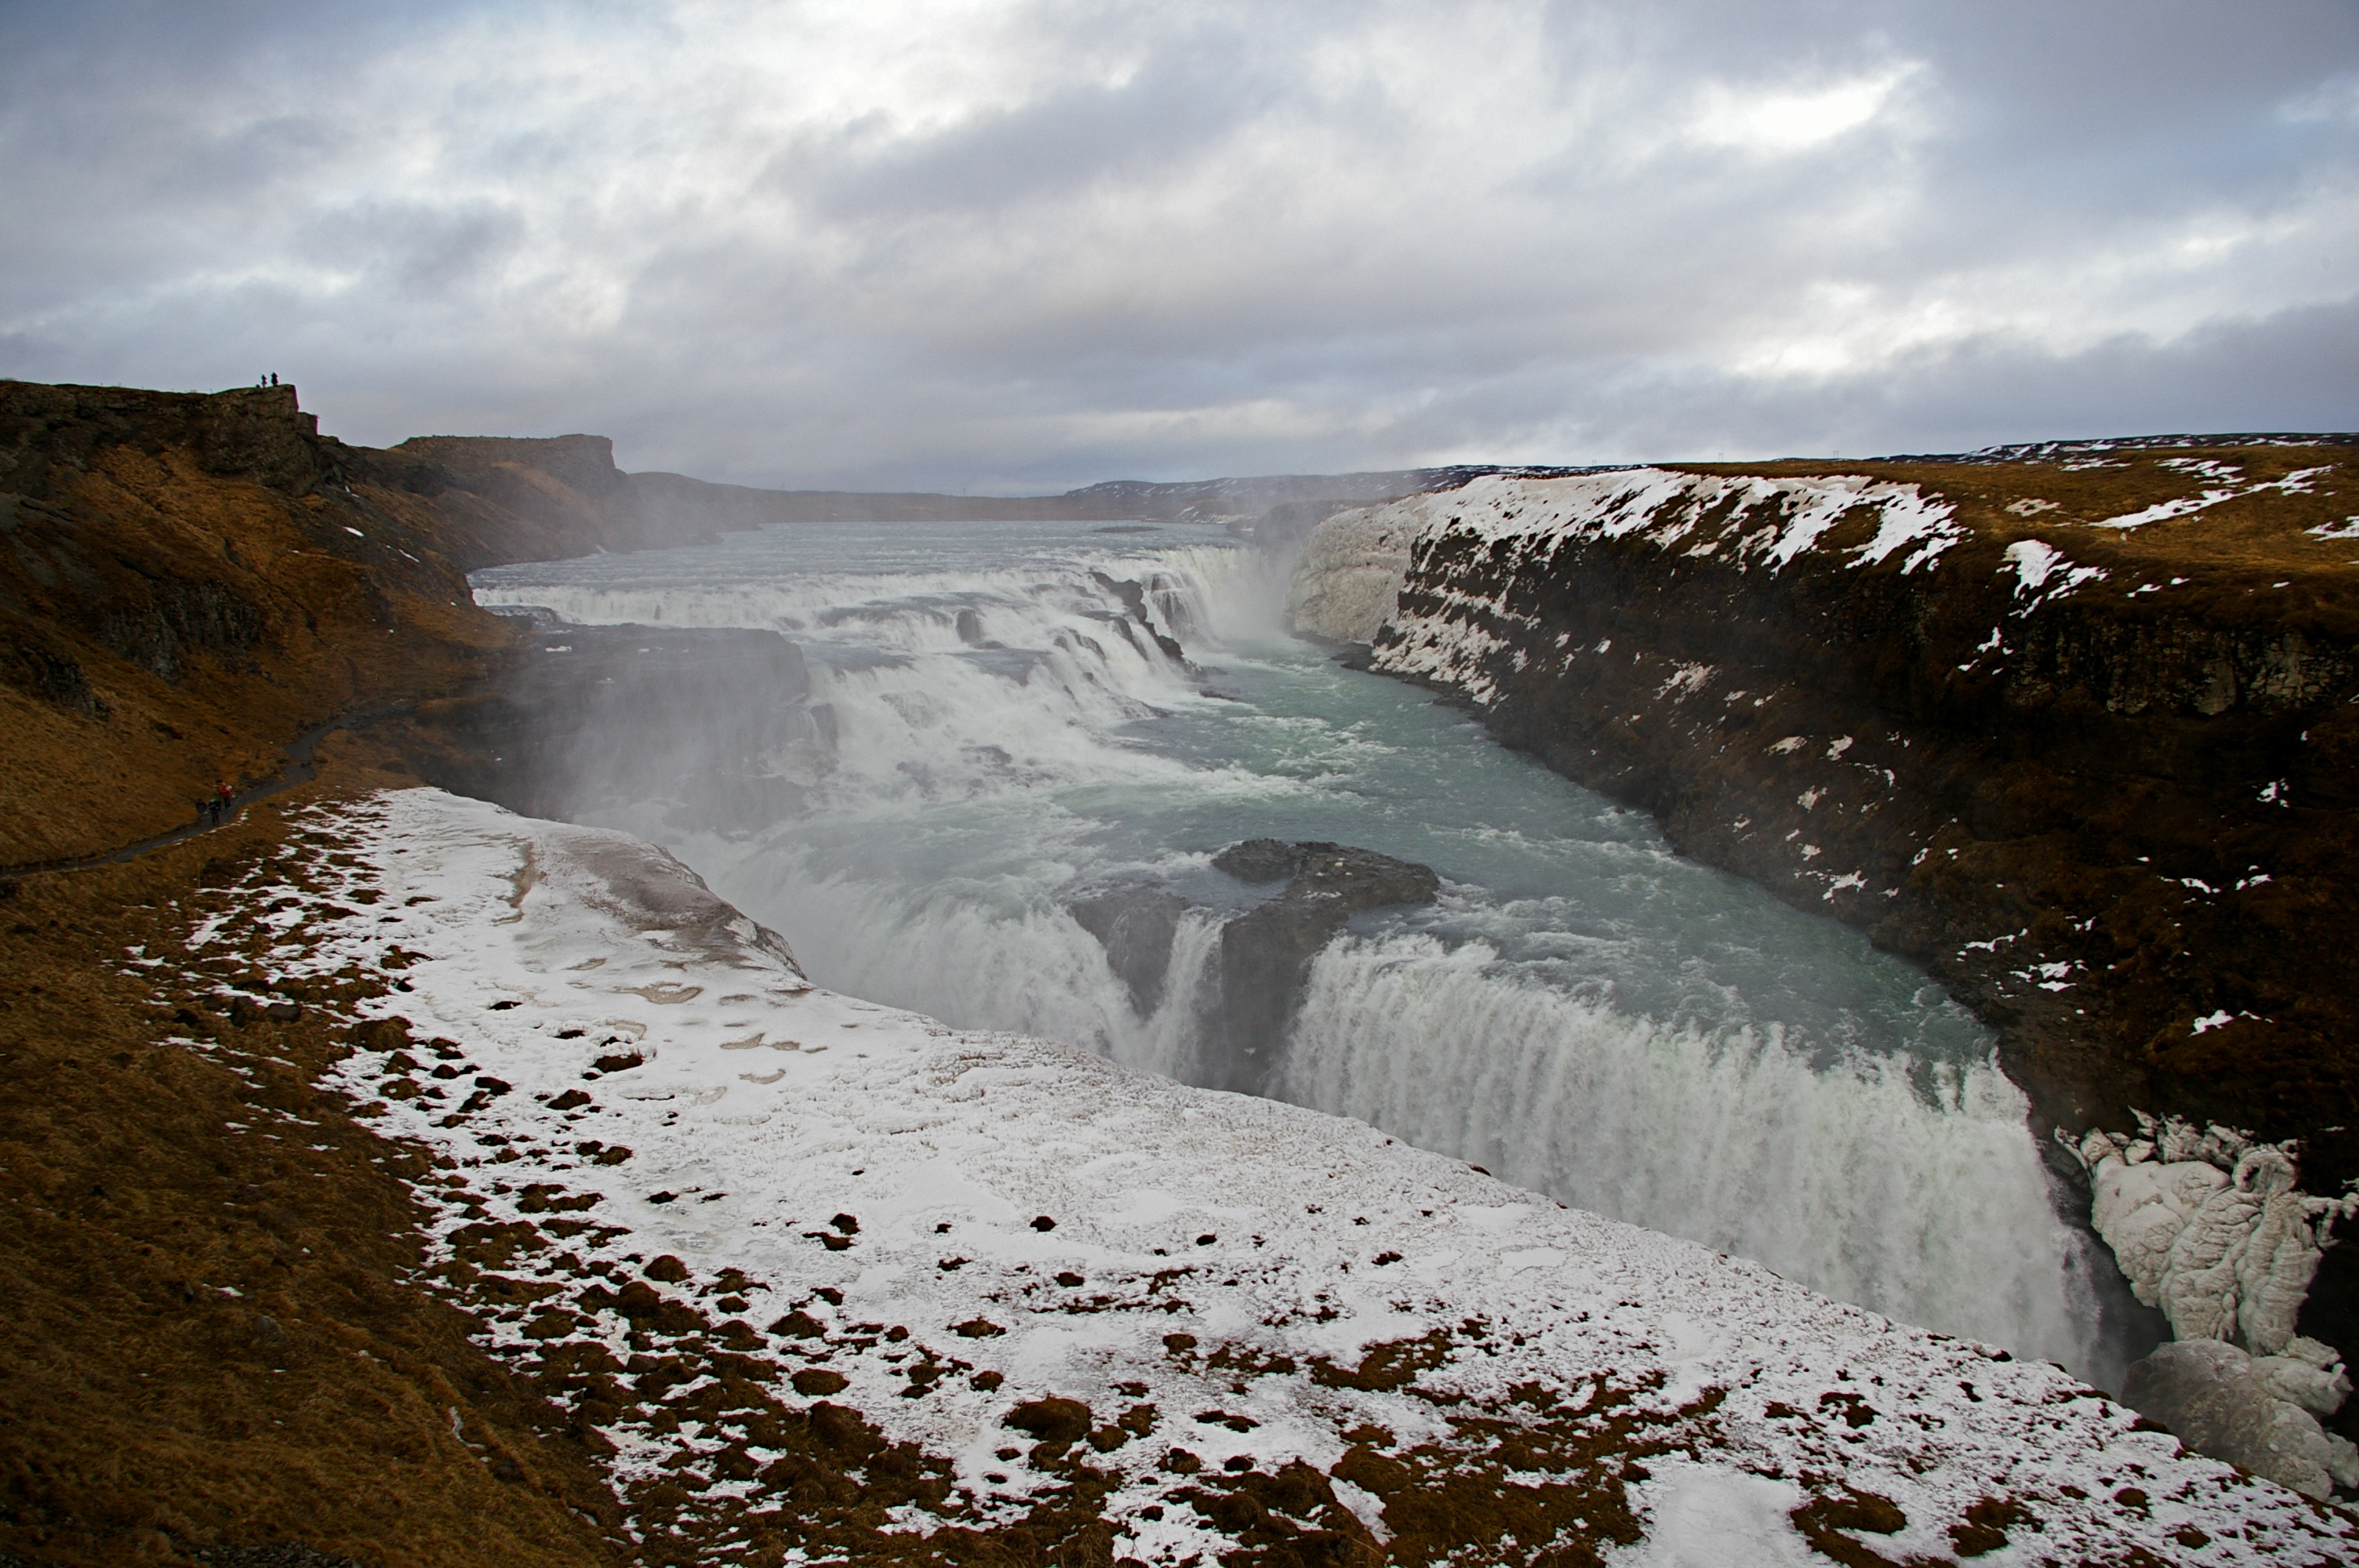 35 Photos Of Gullfoss Golden Falls In Beautiful Iceland